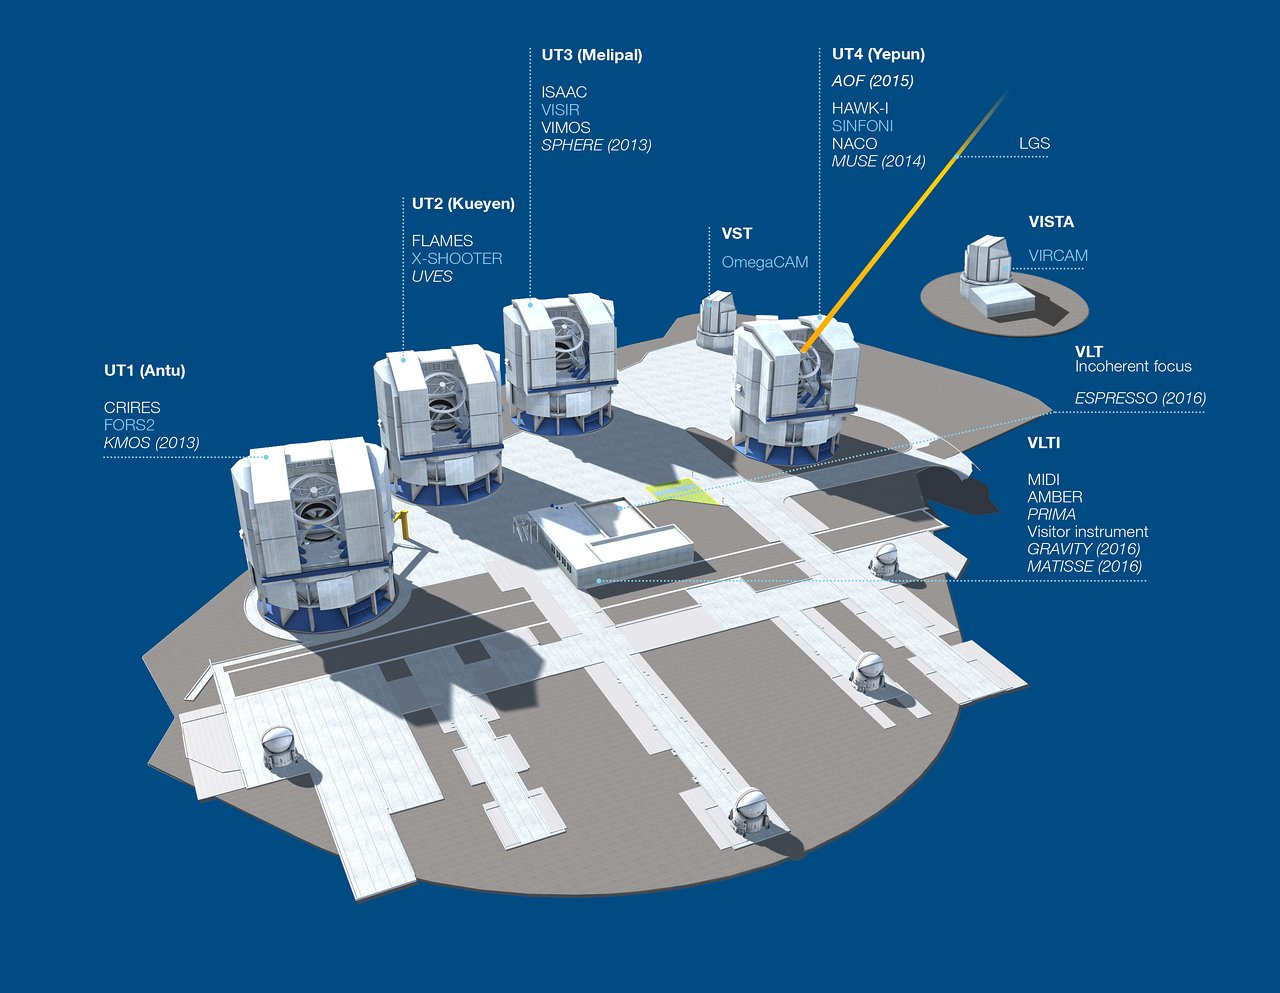 Diagram of the VLT